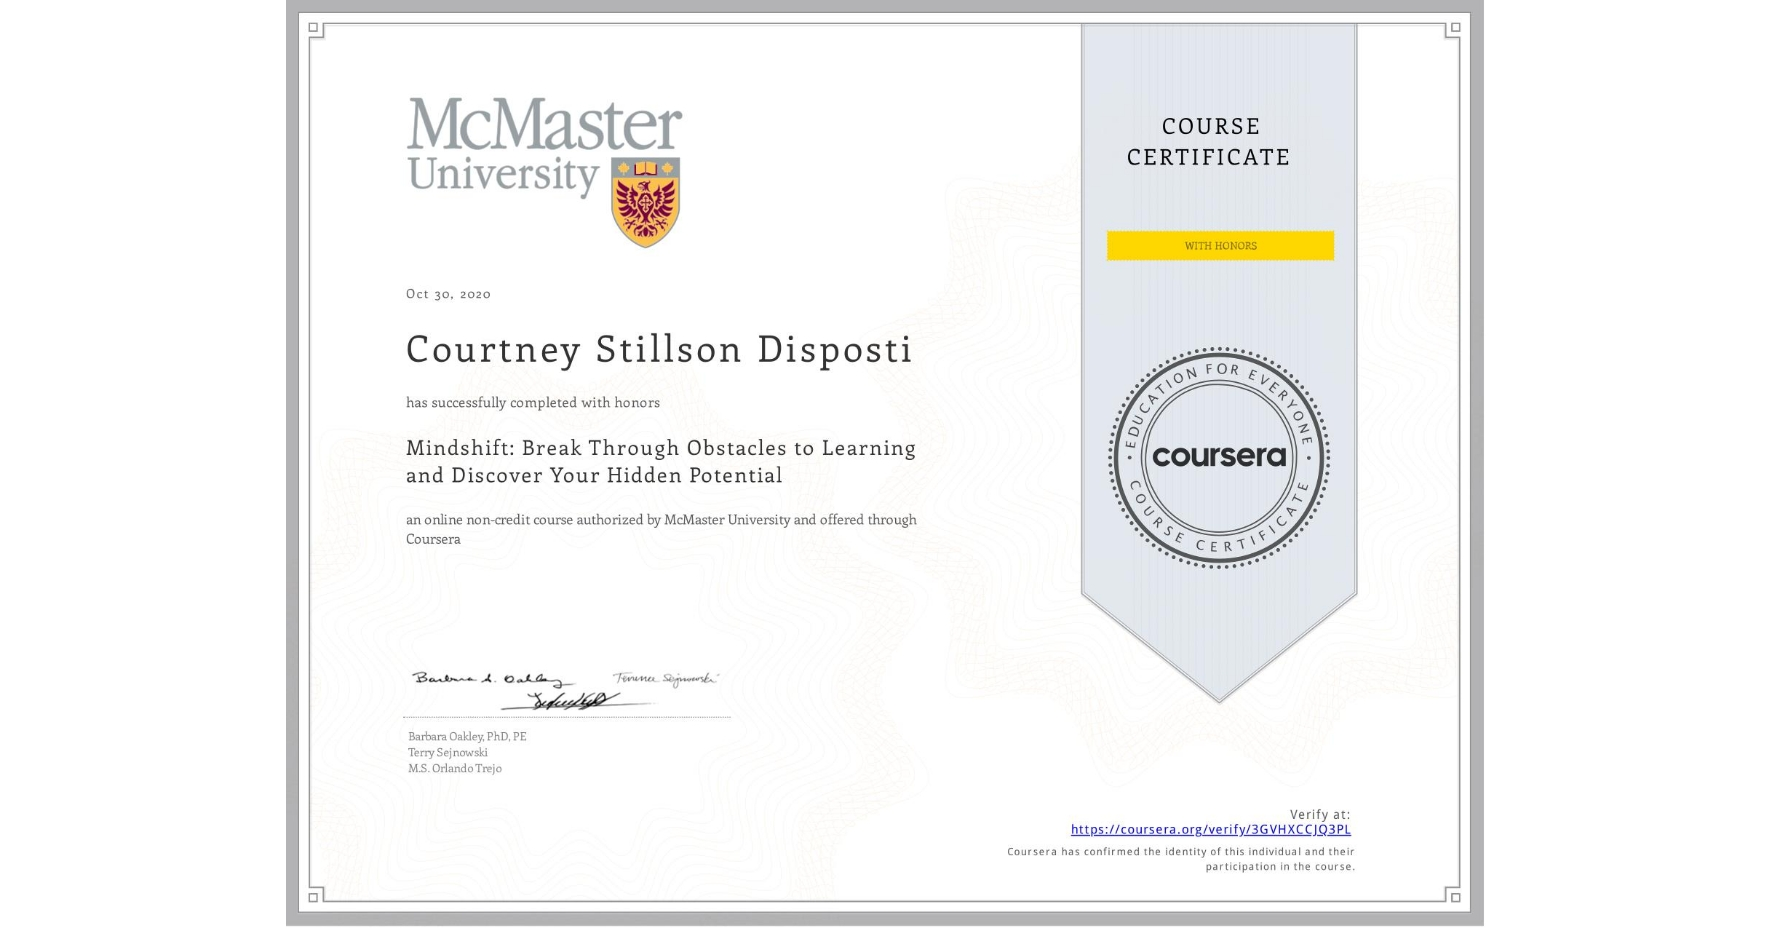 View certificate for Courtney Stillson Disposti, Mindshift: Break Through Obstacles to Learning and Discover Your Hidden Potential, an online non-credit course authorized by McMaster University and offered through Coursera